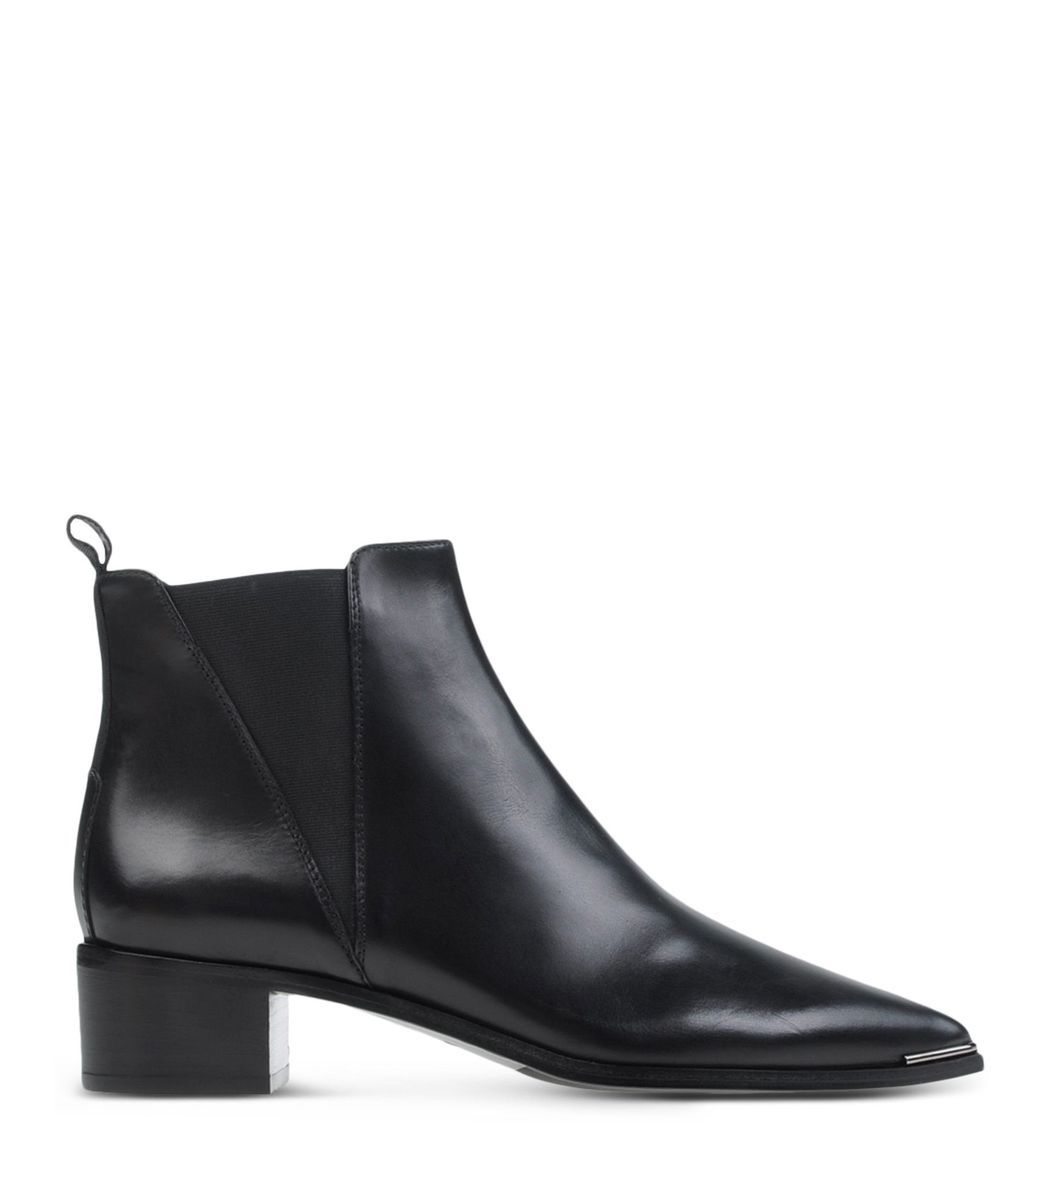 Acne Studios Black Smooth Leather Jensen Boot